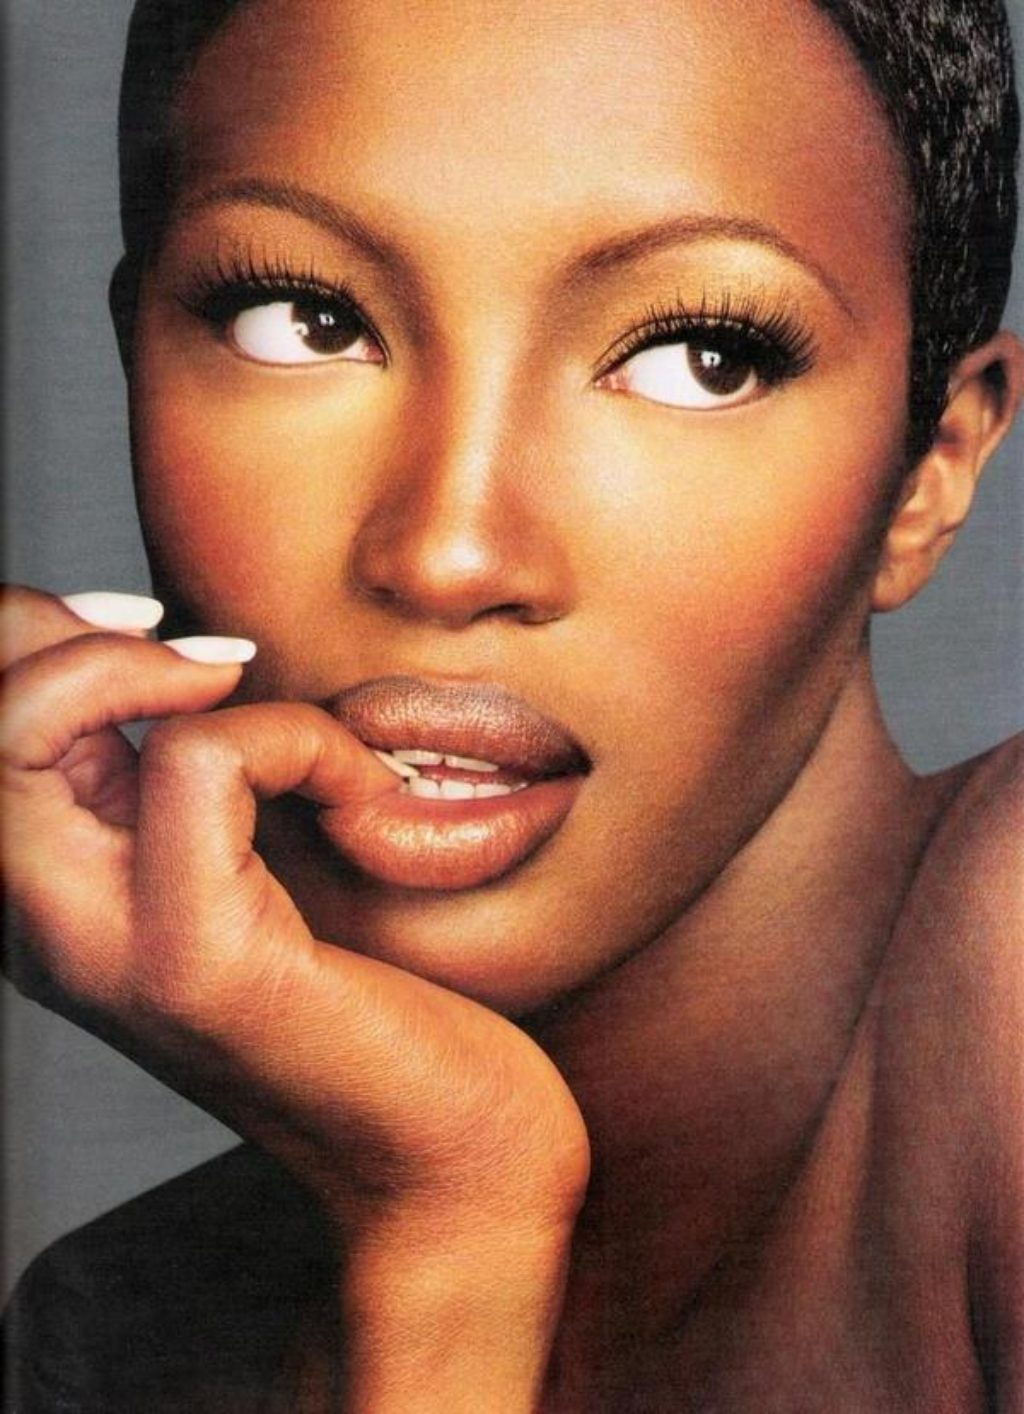 Naomi Campbell portrait with make up by make up artist Kevyn Aucoi